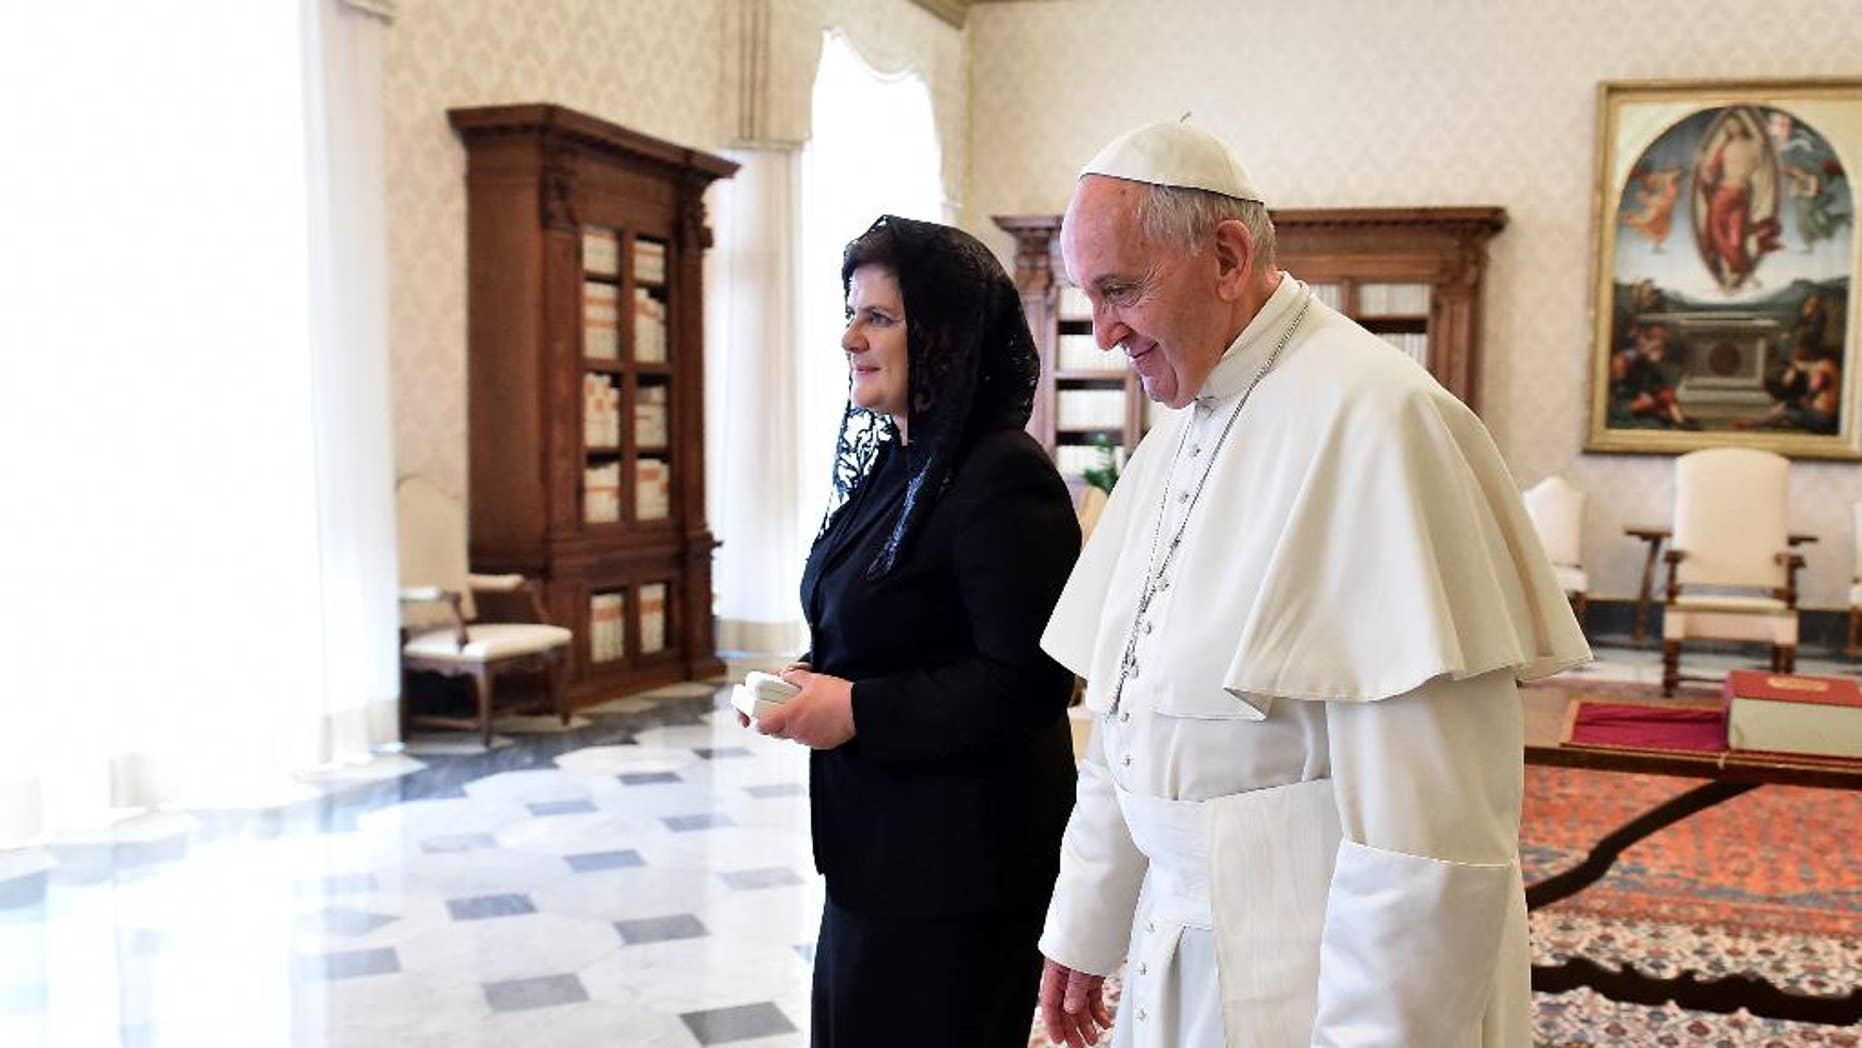 Pope Francis talks with Poland's Prime Minister Beata Szydlo during a private audience in the pontiff's studio at the Vatican, Friday, May 13, 2016. (Gabriel Bouys/AFP Pool via AP)